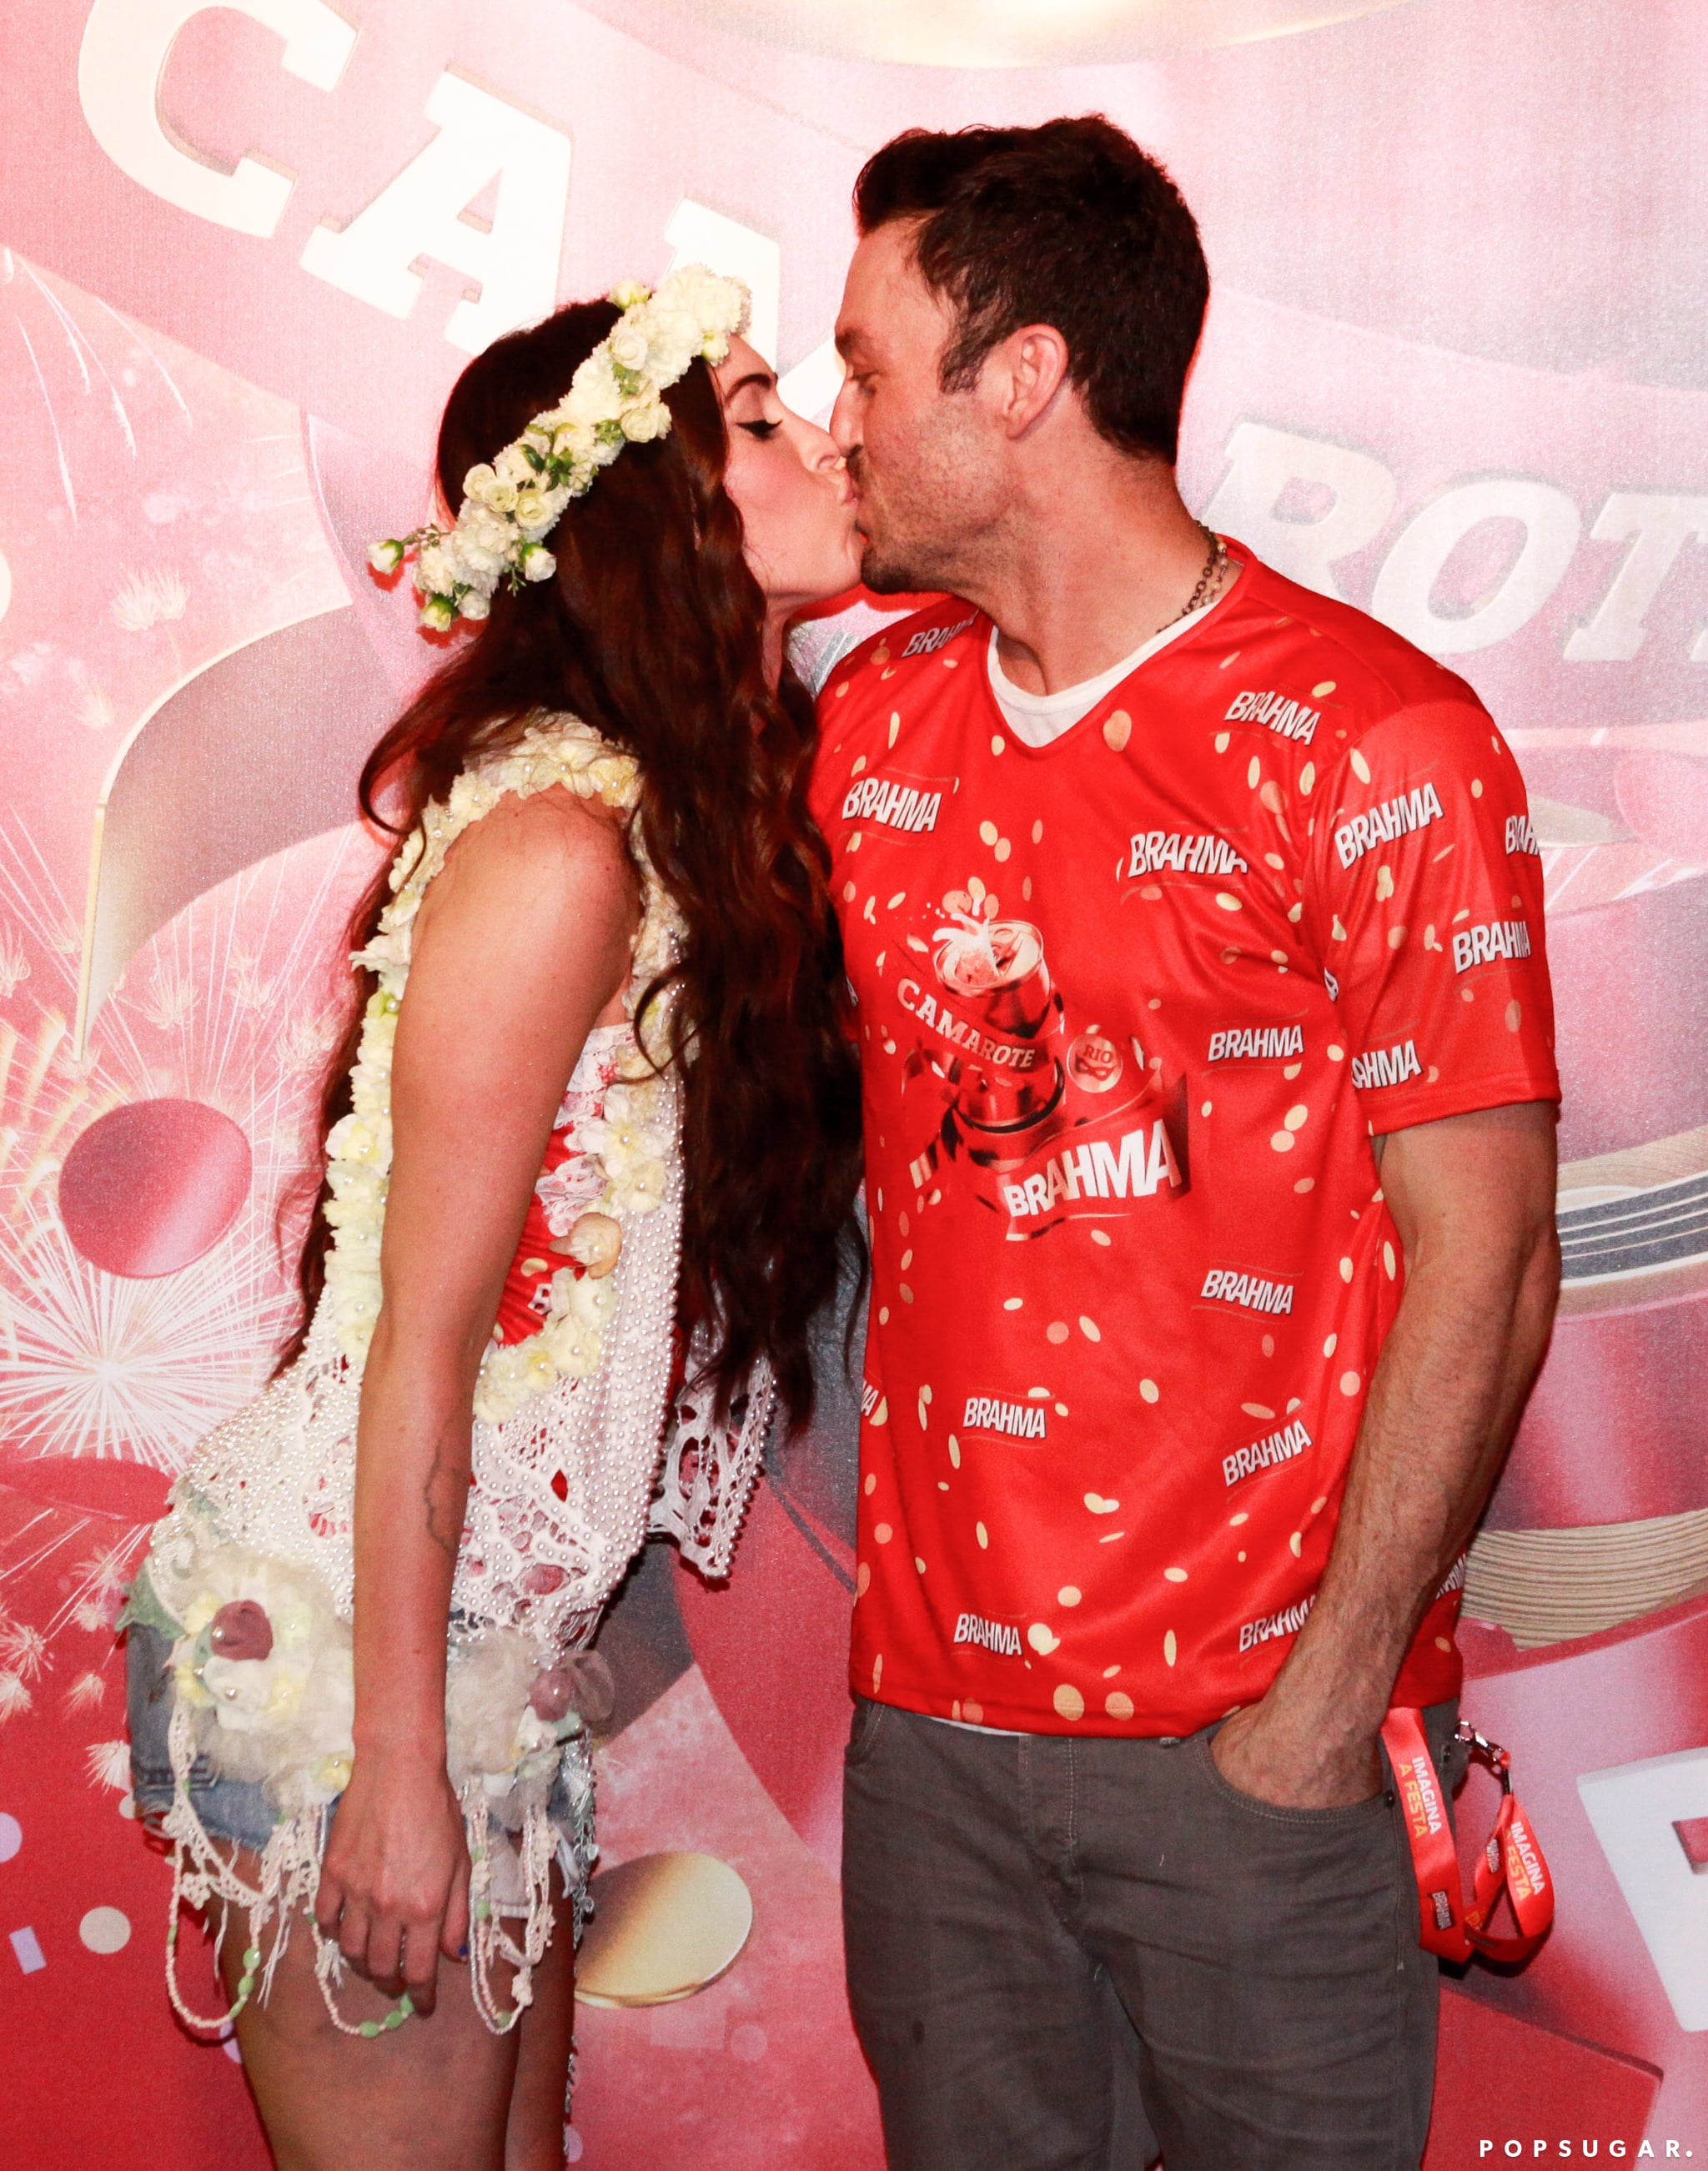 The couple showed adorable PDA during a trip to Carnival in Brazil back in February 2013.